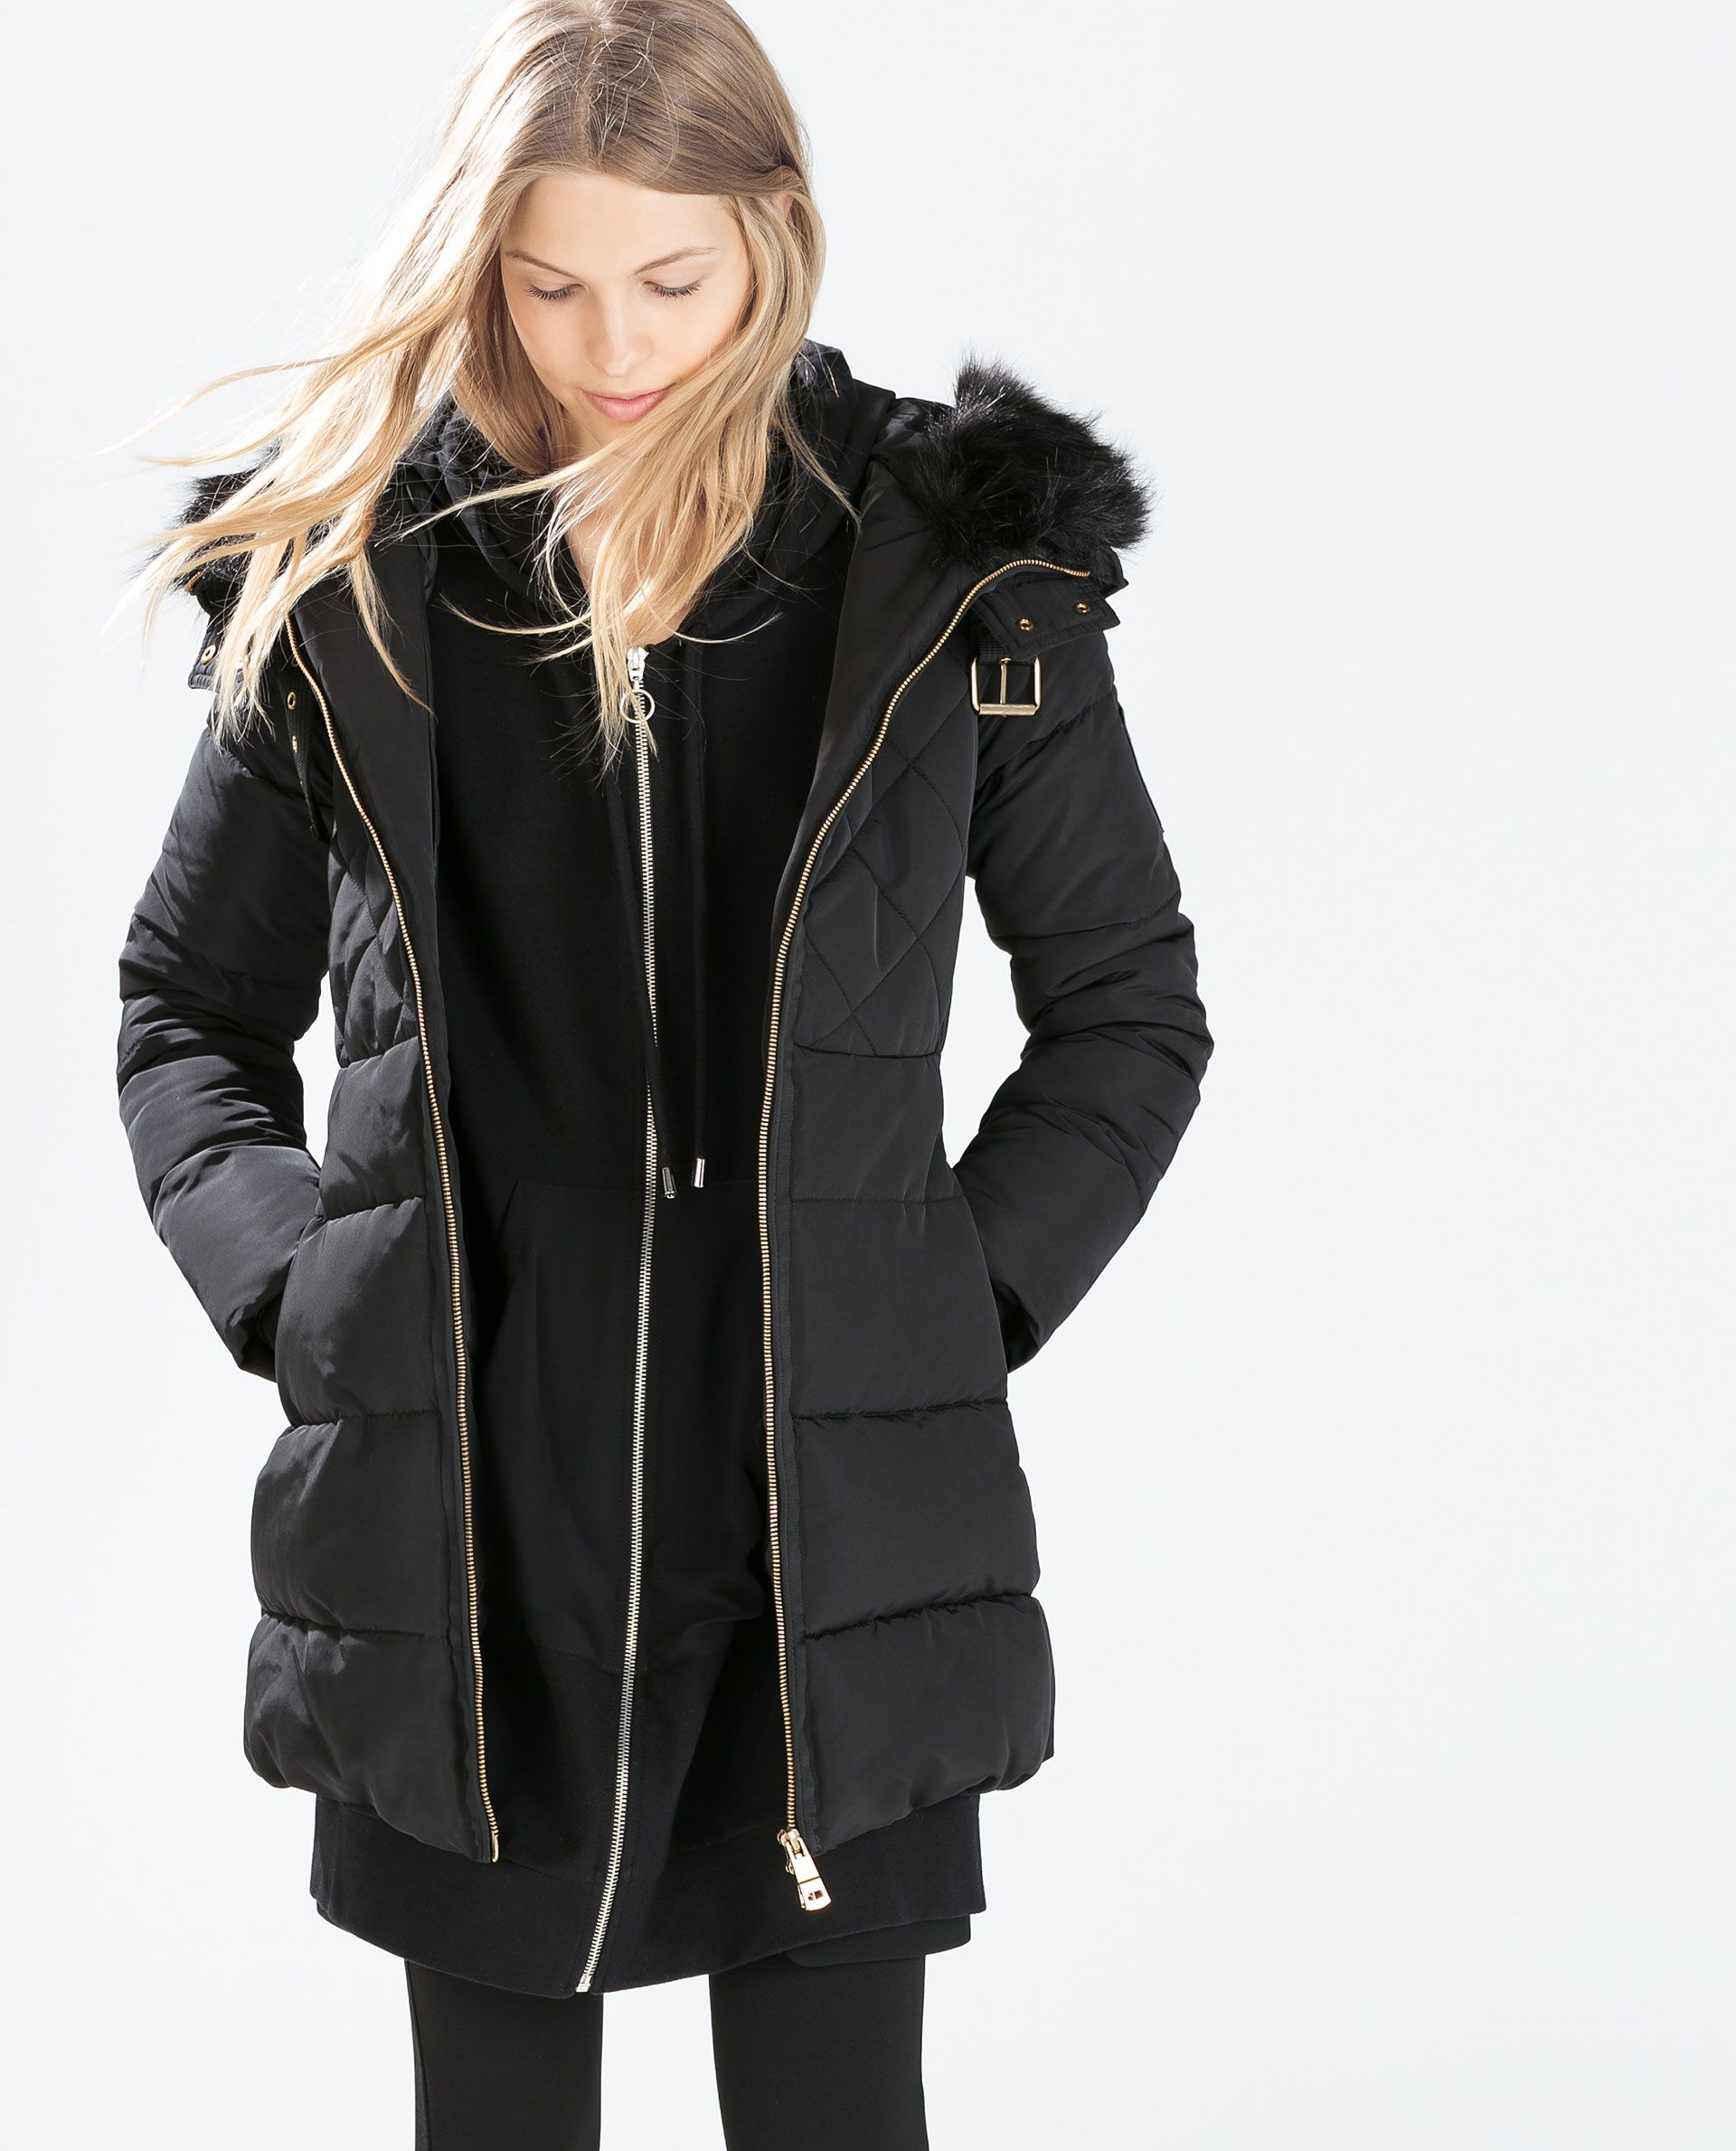 MID-LENGTH DOWN JACKET WITH FUR COLLAR from Zara  149  178d4b5a514c